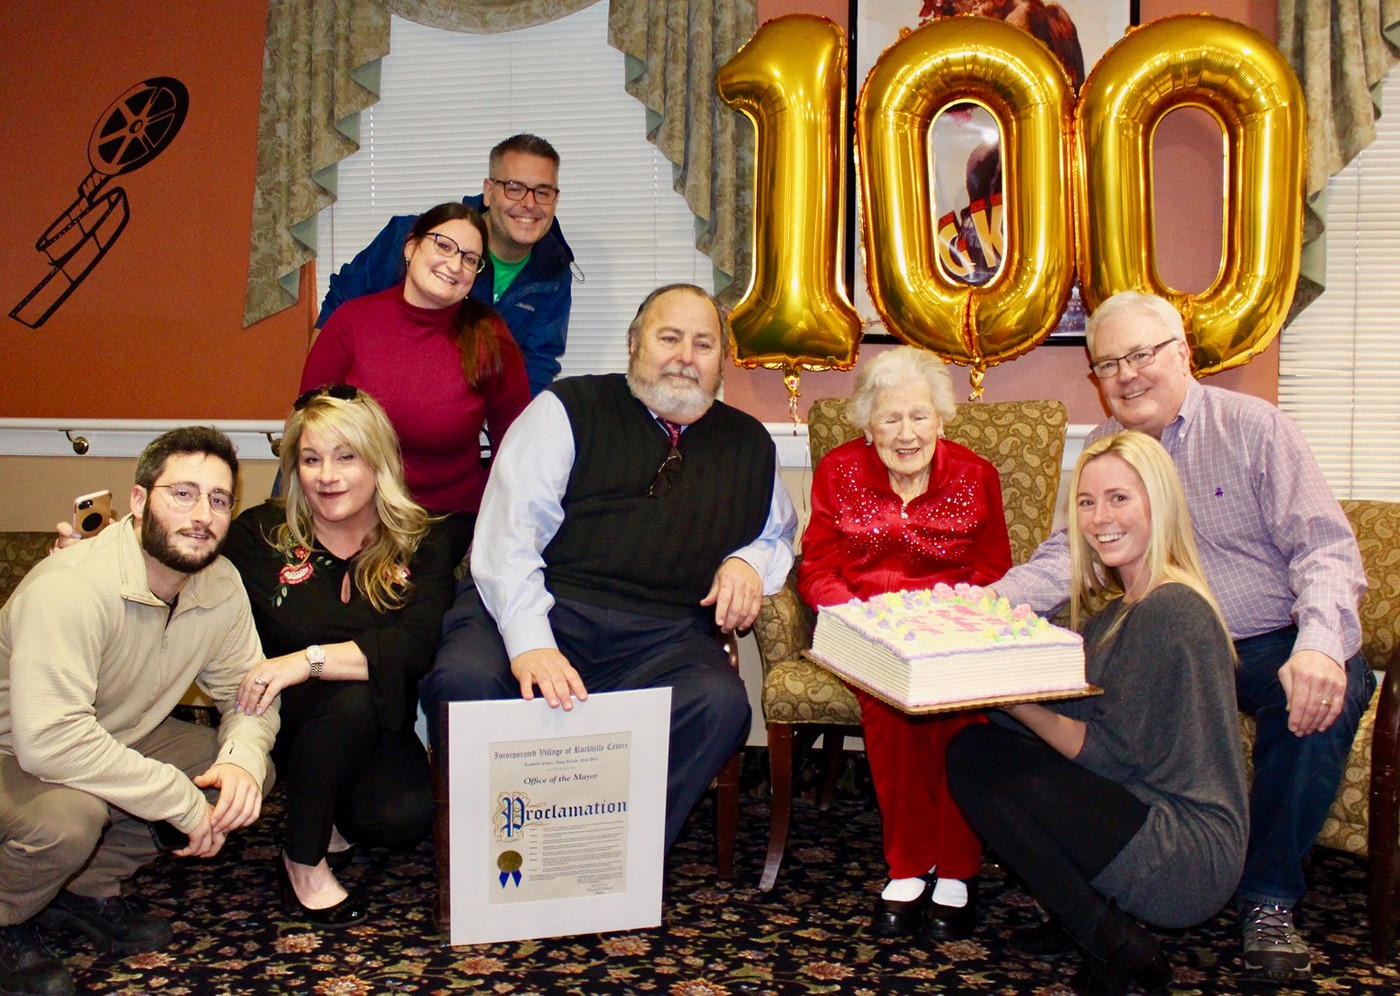 Rockville Centre Mayor Francis X. Murray honored McAteer at the celebration. Great-grandson Brian Gottlieb, grandson Tom McAteer, grand-daughter-in-law Sarah McAteer, granddaughter Jennifer Gottlieb, son Ray McAteer and Maple Pointe staffer Dani Laino also attended.